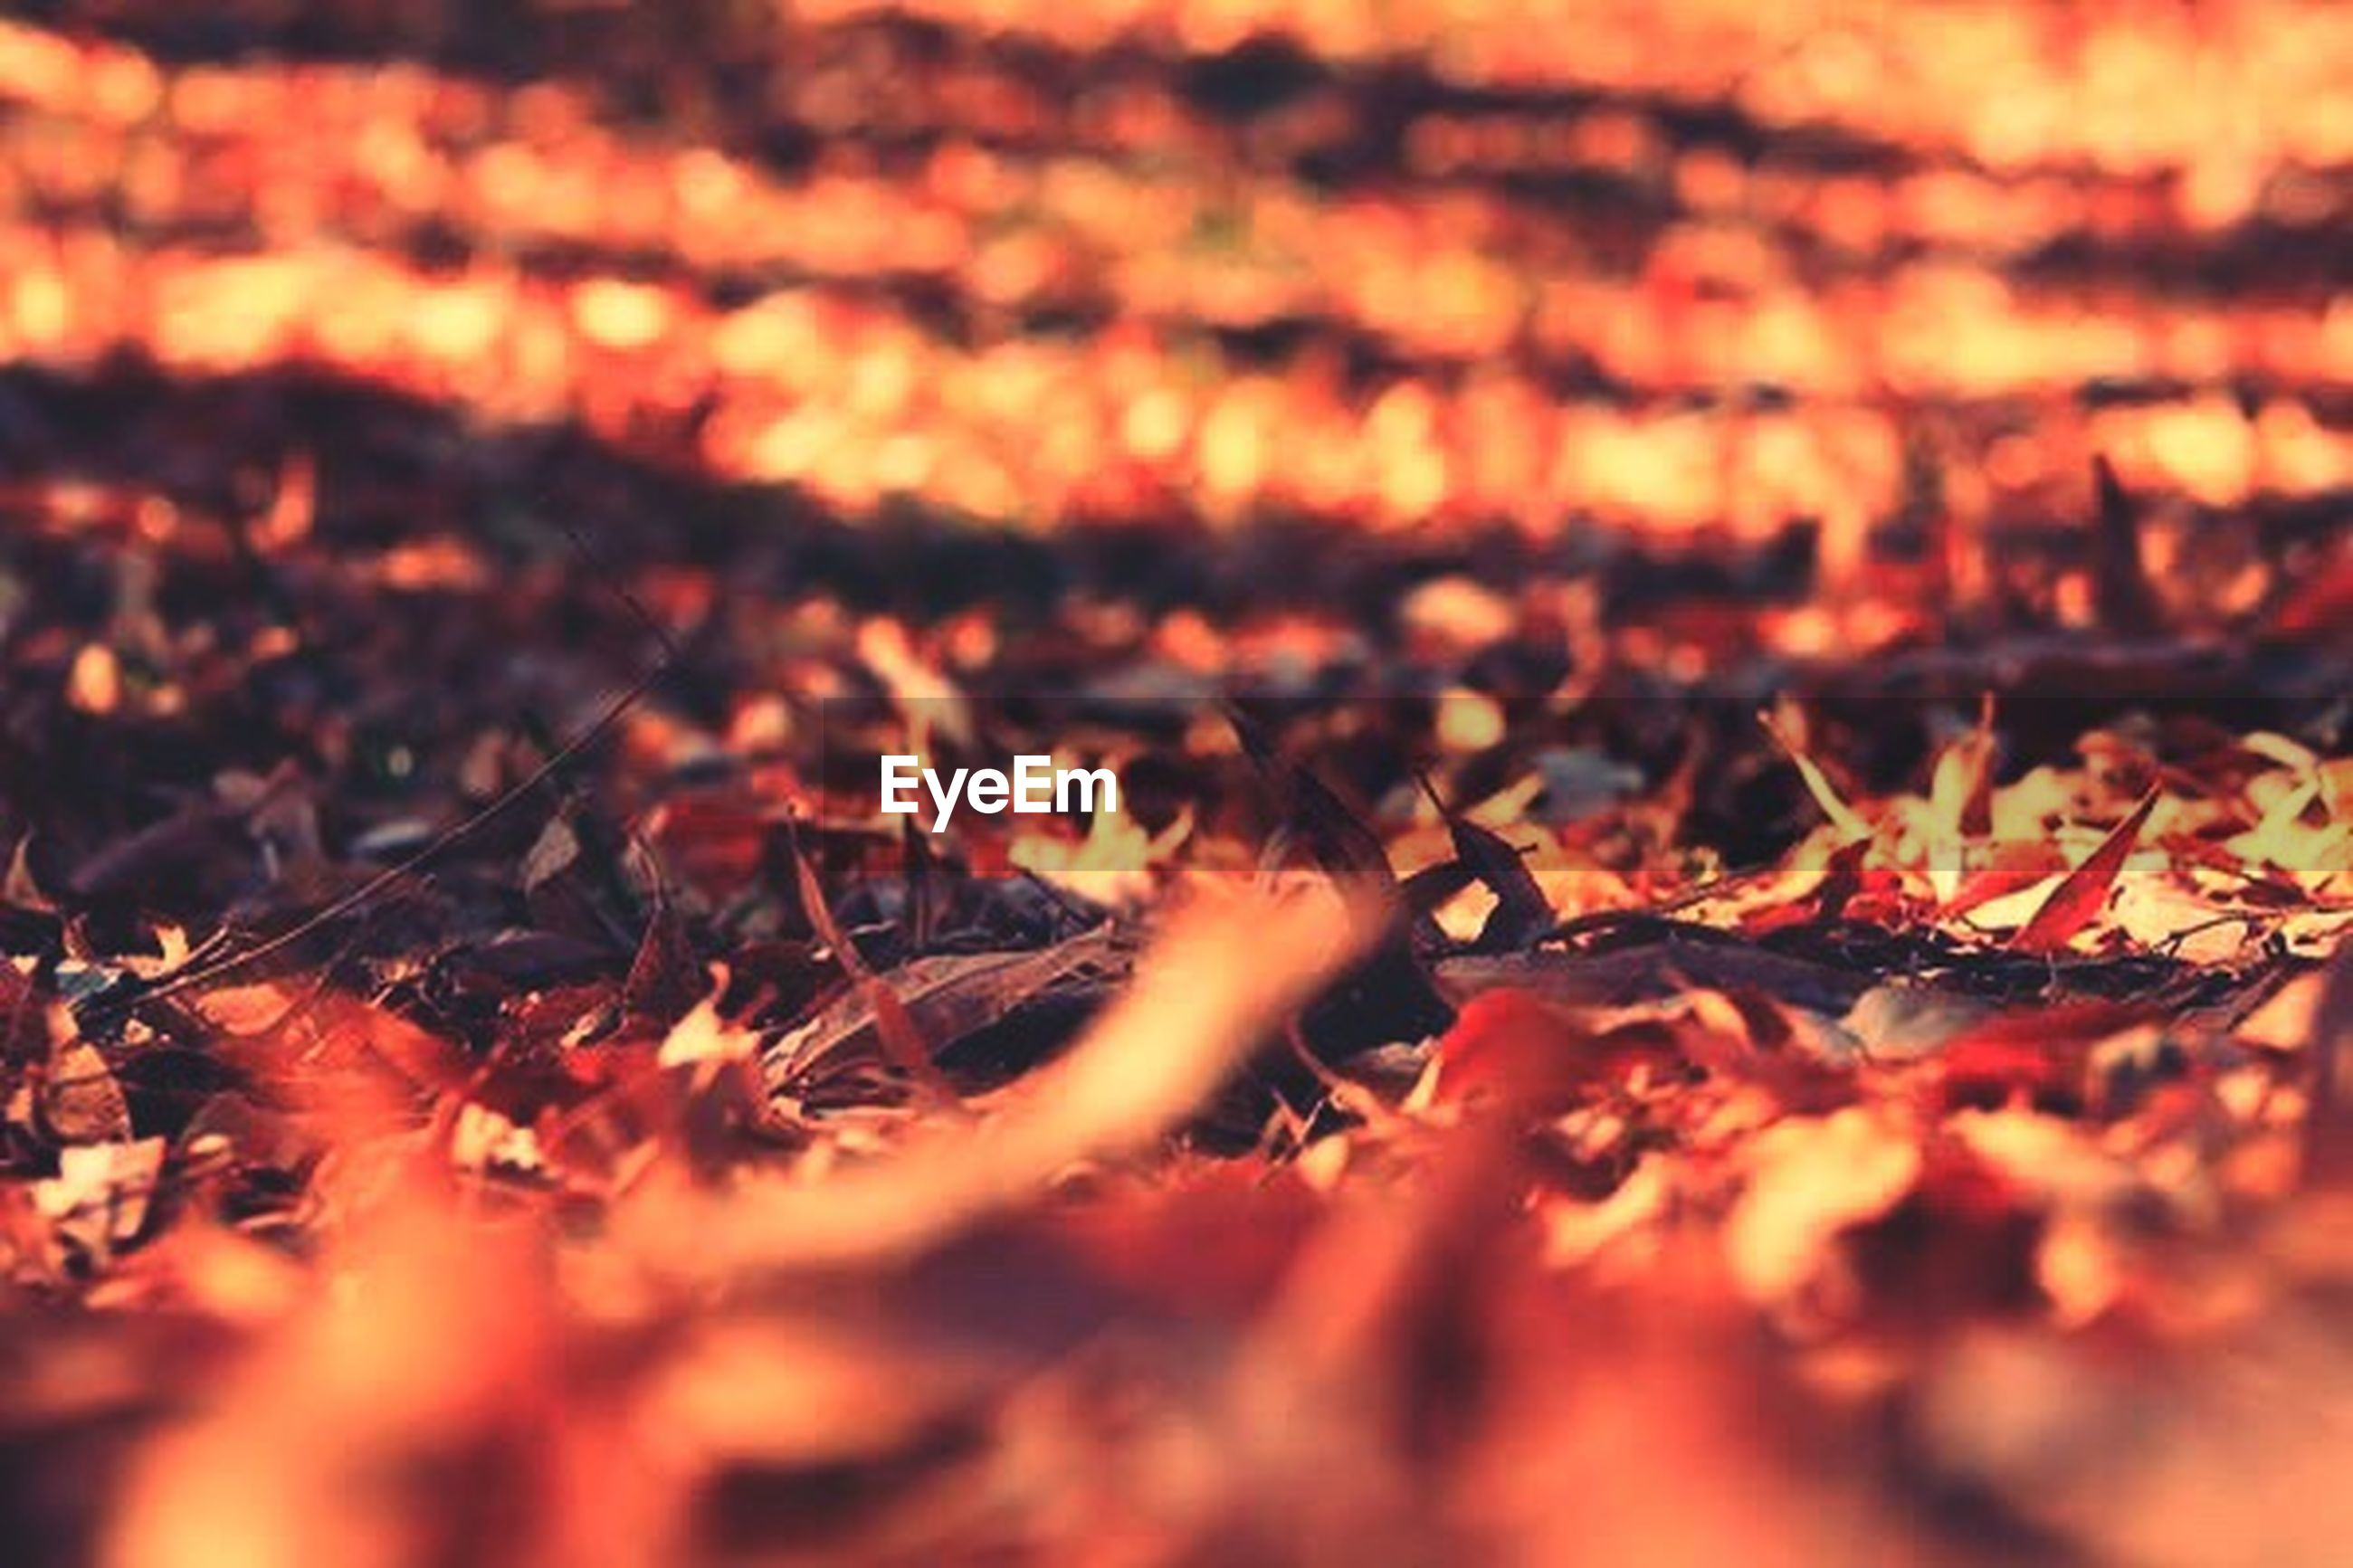 change, autumn, leaf, nature, close-up, no people, outdoors, backgrounds, full frame, beauty in nature, day, maple